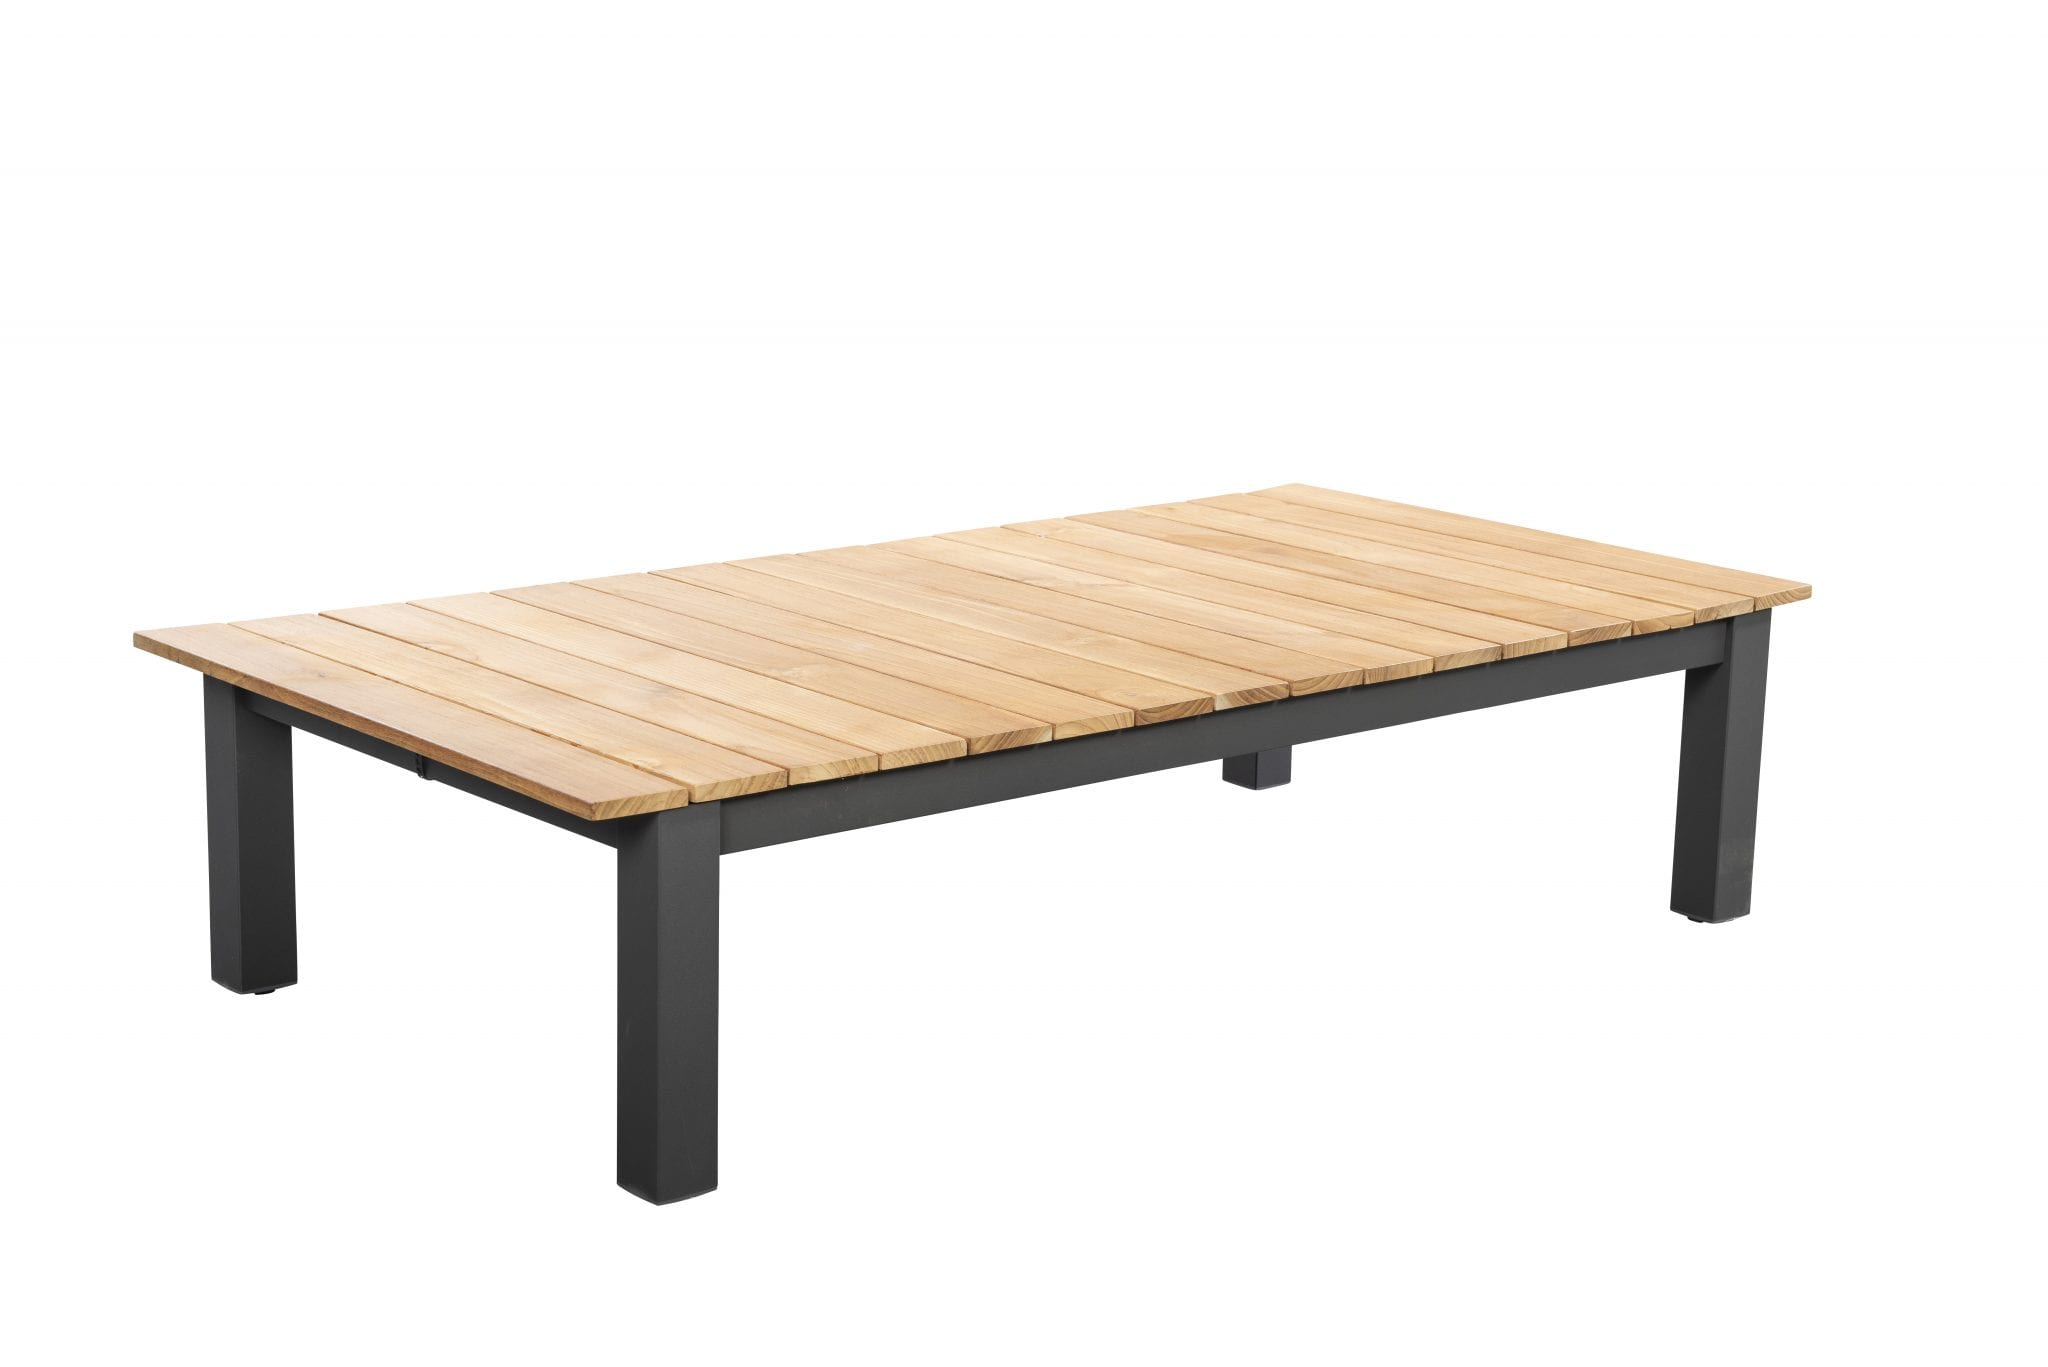 Midori 140x75 coffee table - dark grey | Yoi Furniture